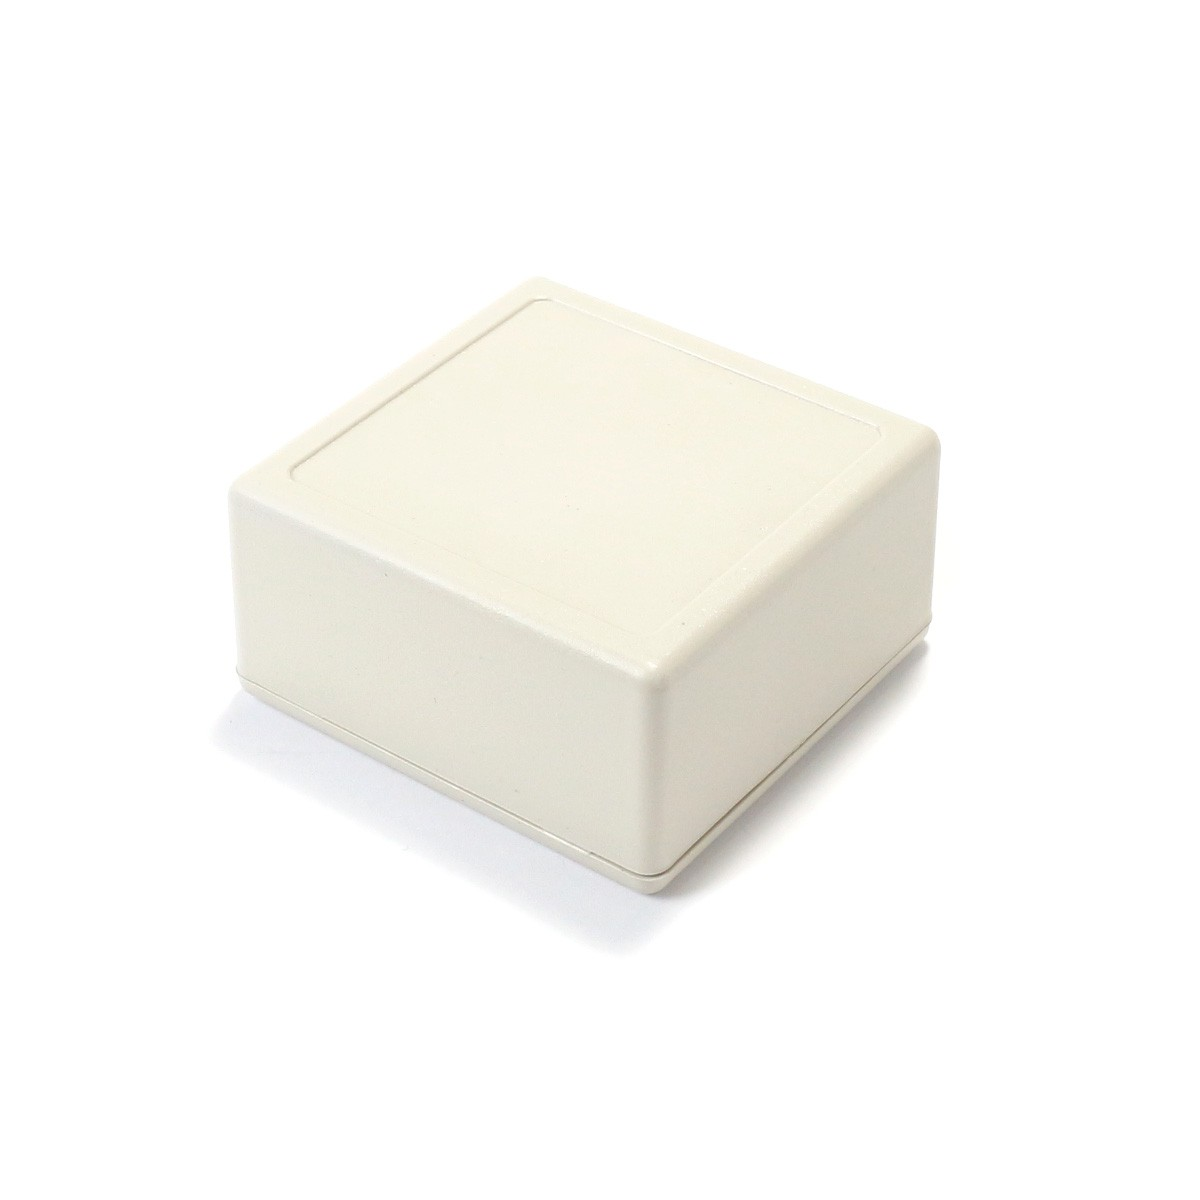 Plastic Case for Electronic Components White 58x56x28mm